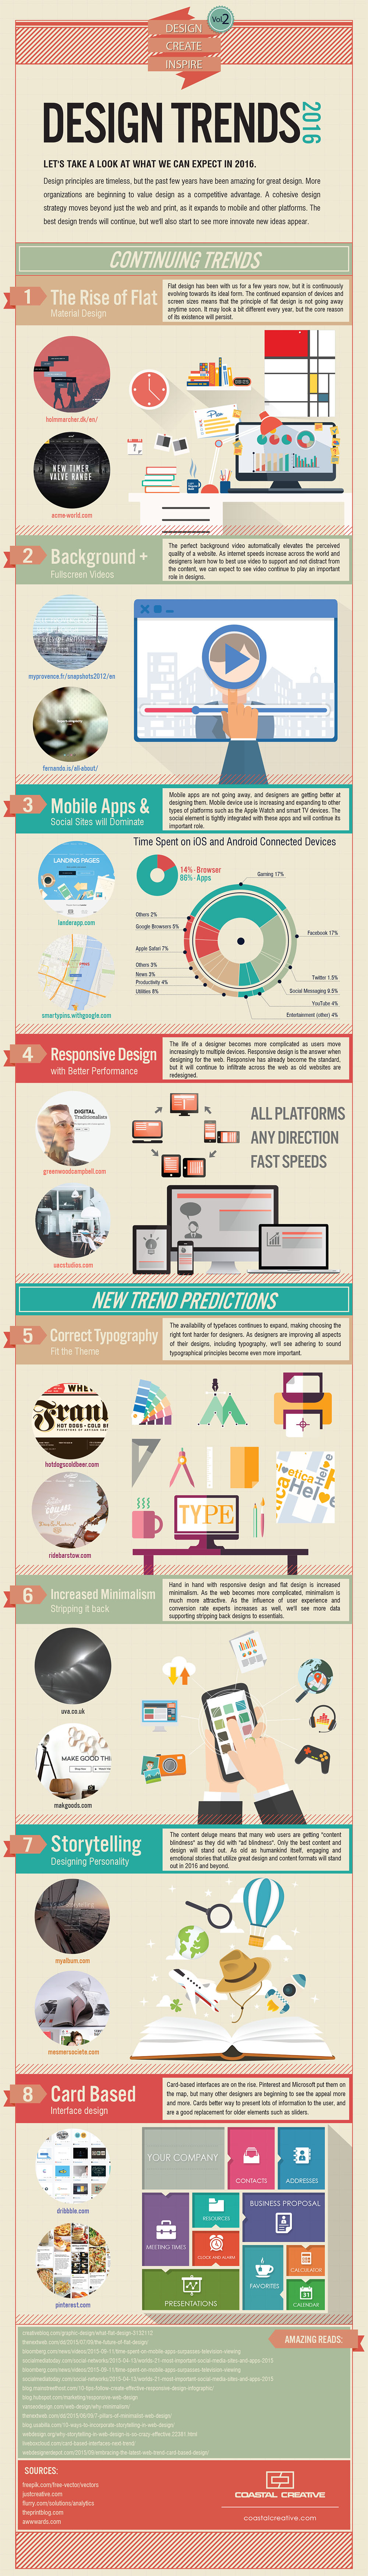 Webdesign Trends 2016 - Infographic by Coastal Creative